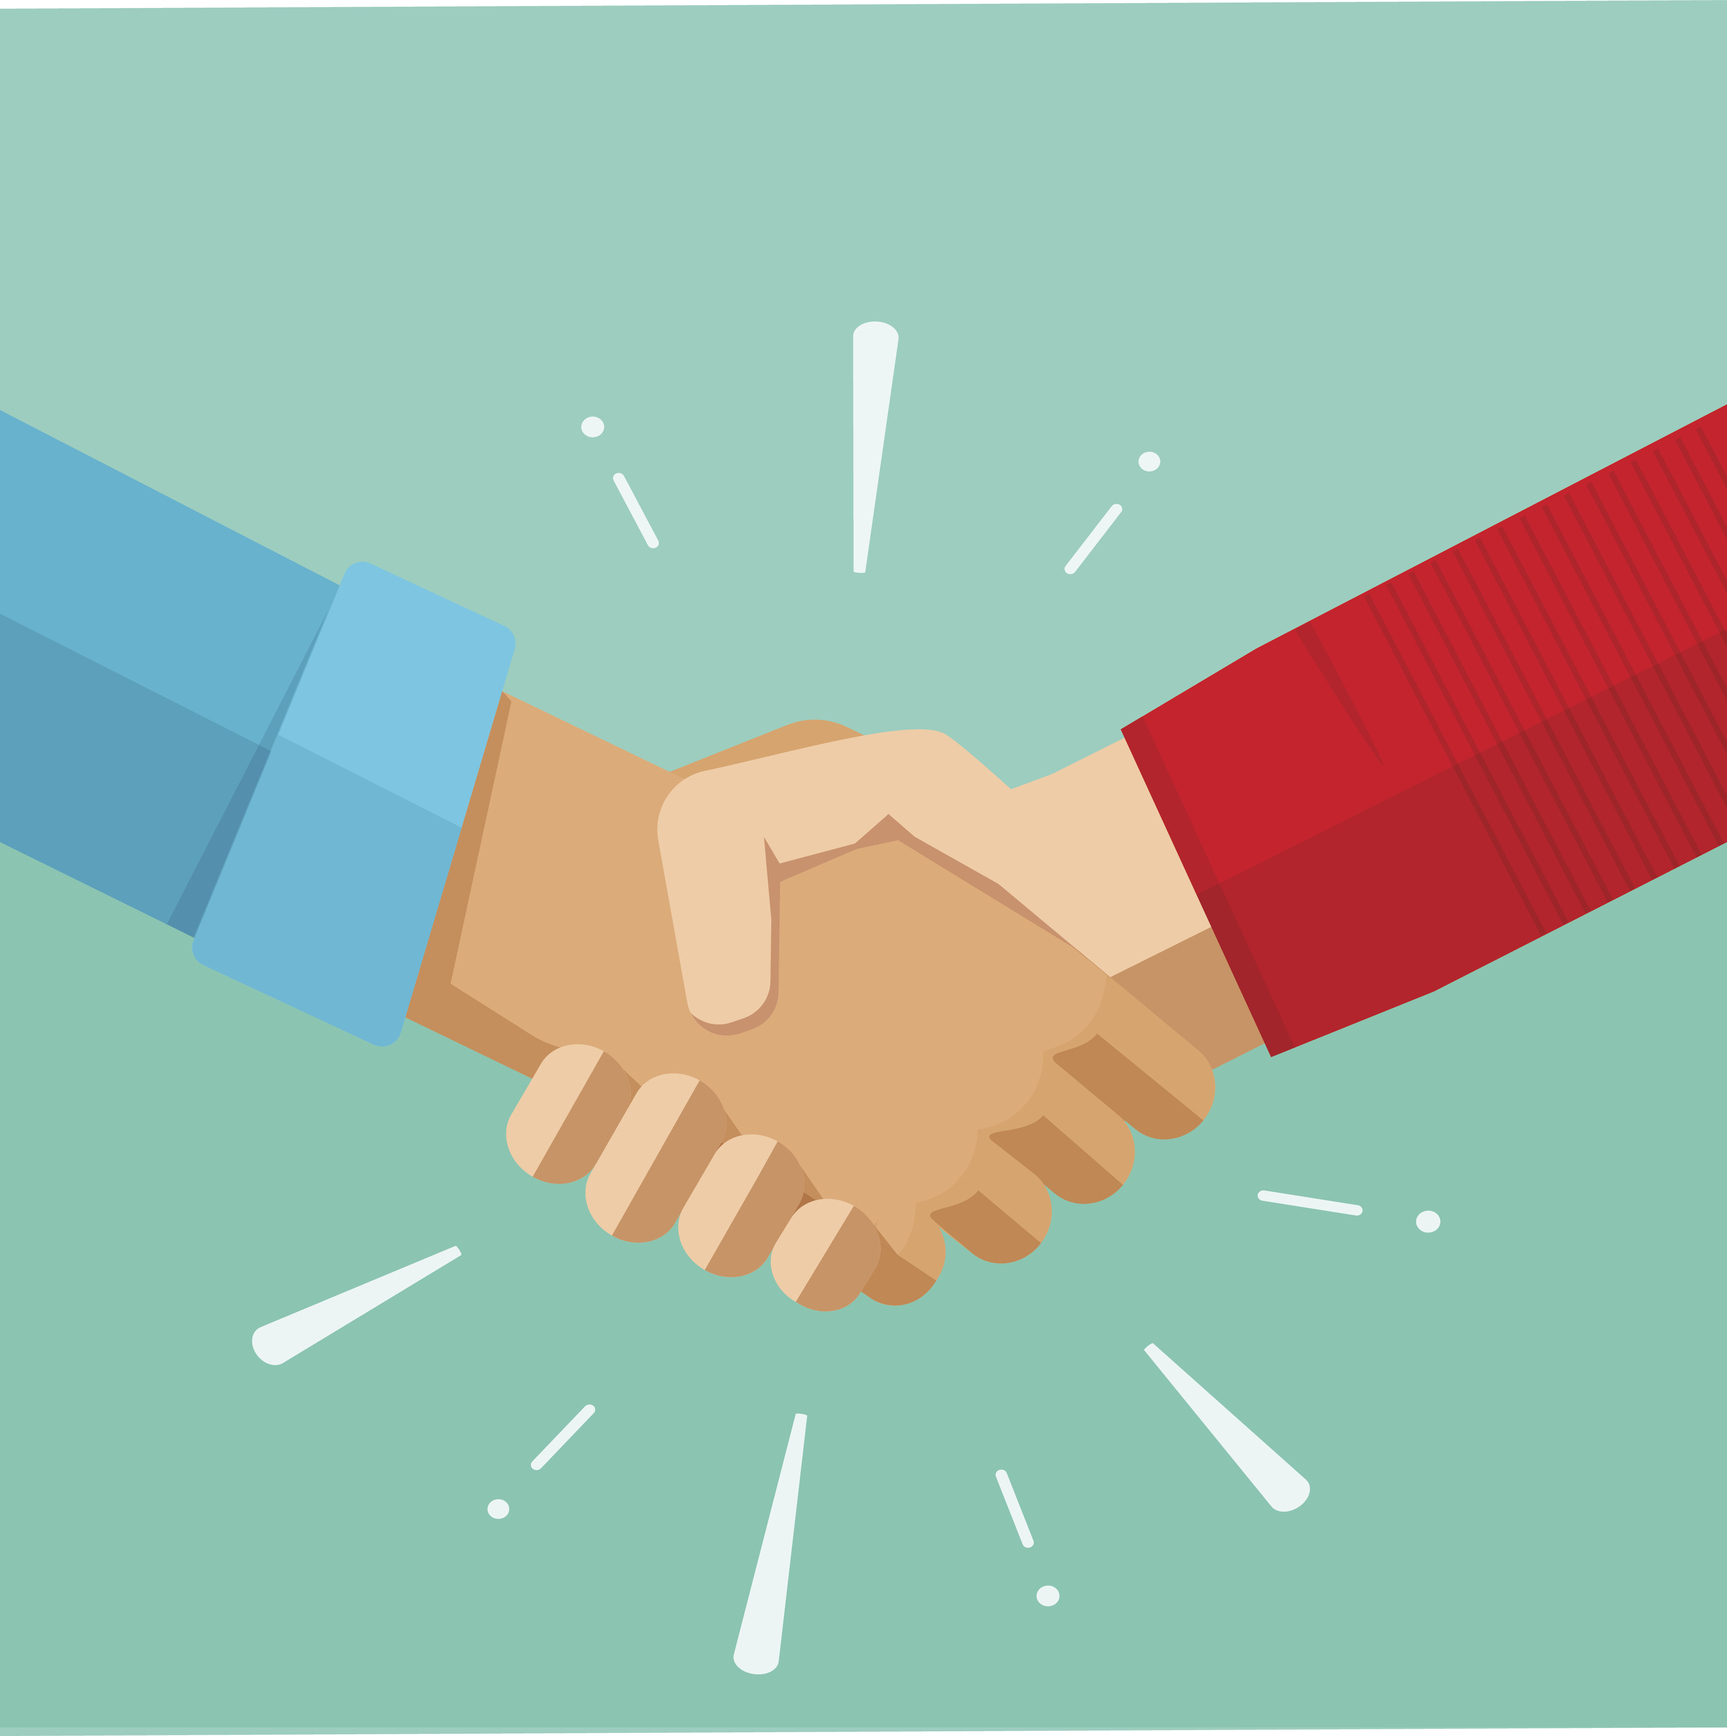 the drama of the handshake ramsey s rules shaking hands vector illustration shake hands vector logo